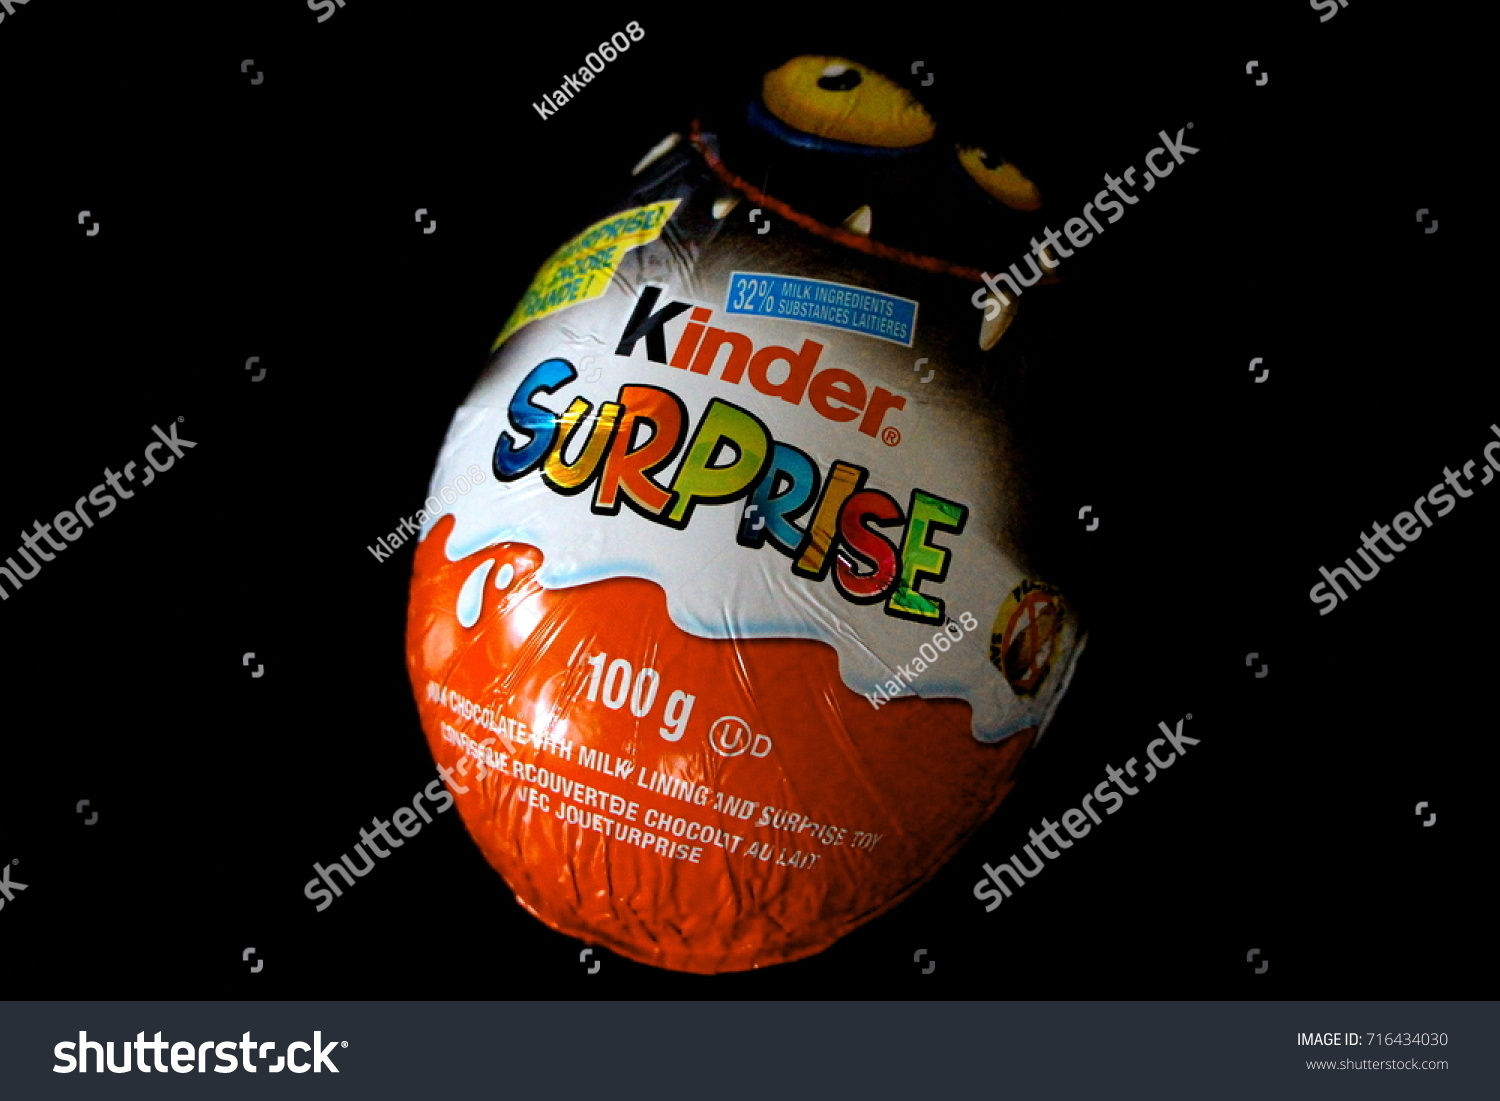 stock photo halloween treat kinder surprise chocolate egg vancouver bc on saturday september